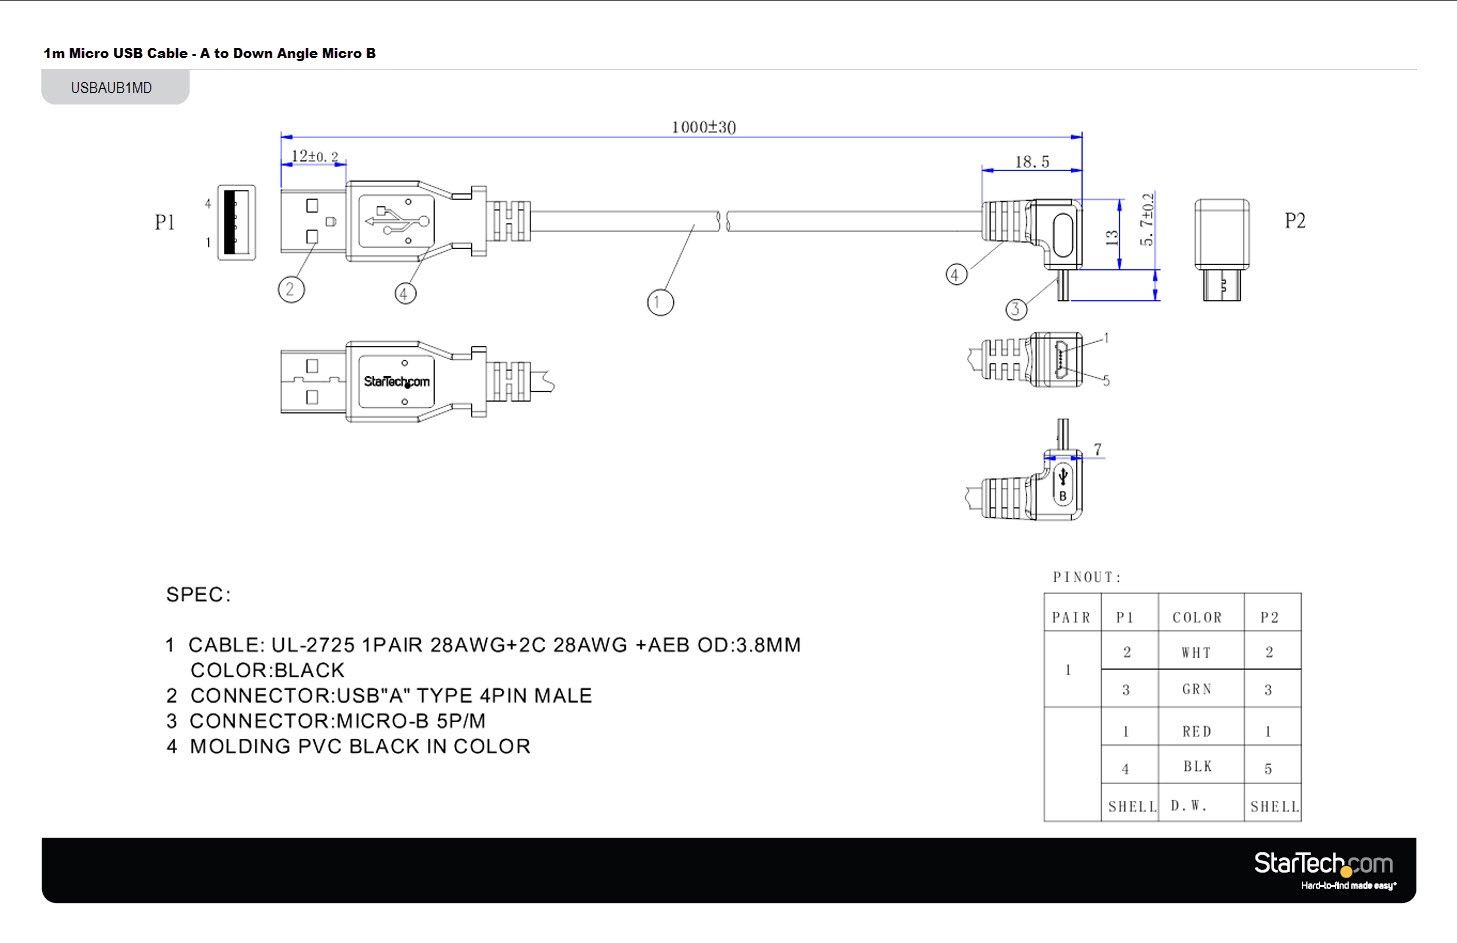 New Wiring Diagram Usb Cable In 2020 Usb Cable Usb Cable